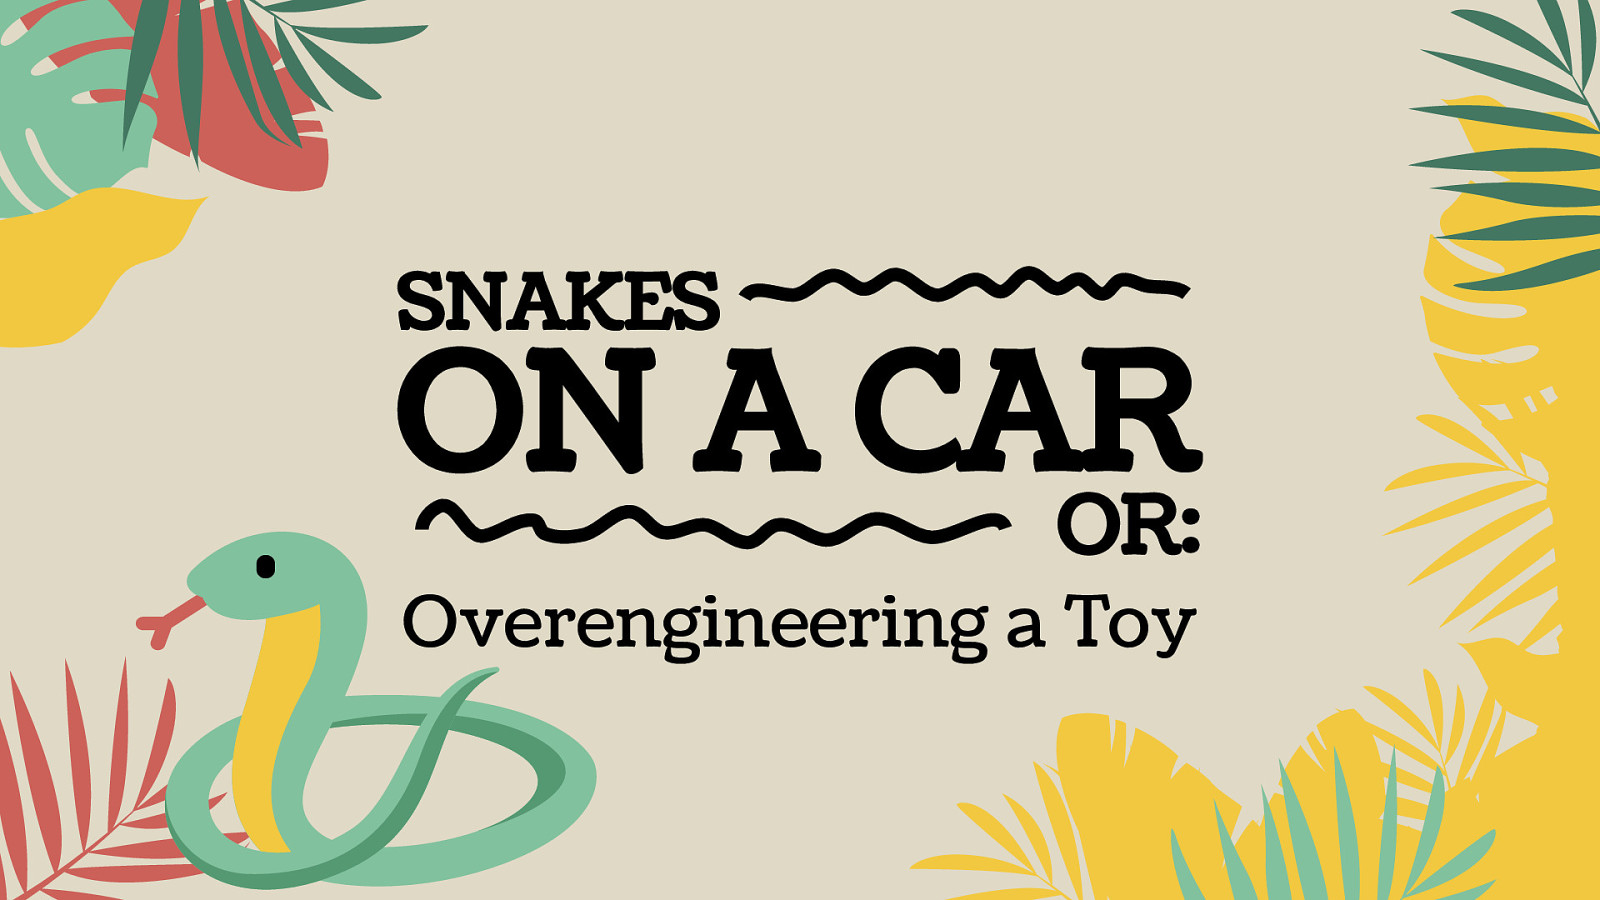 Snakes on a Car: Or, Over-engineering a Toy